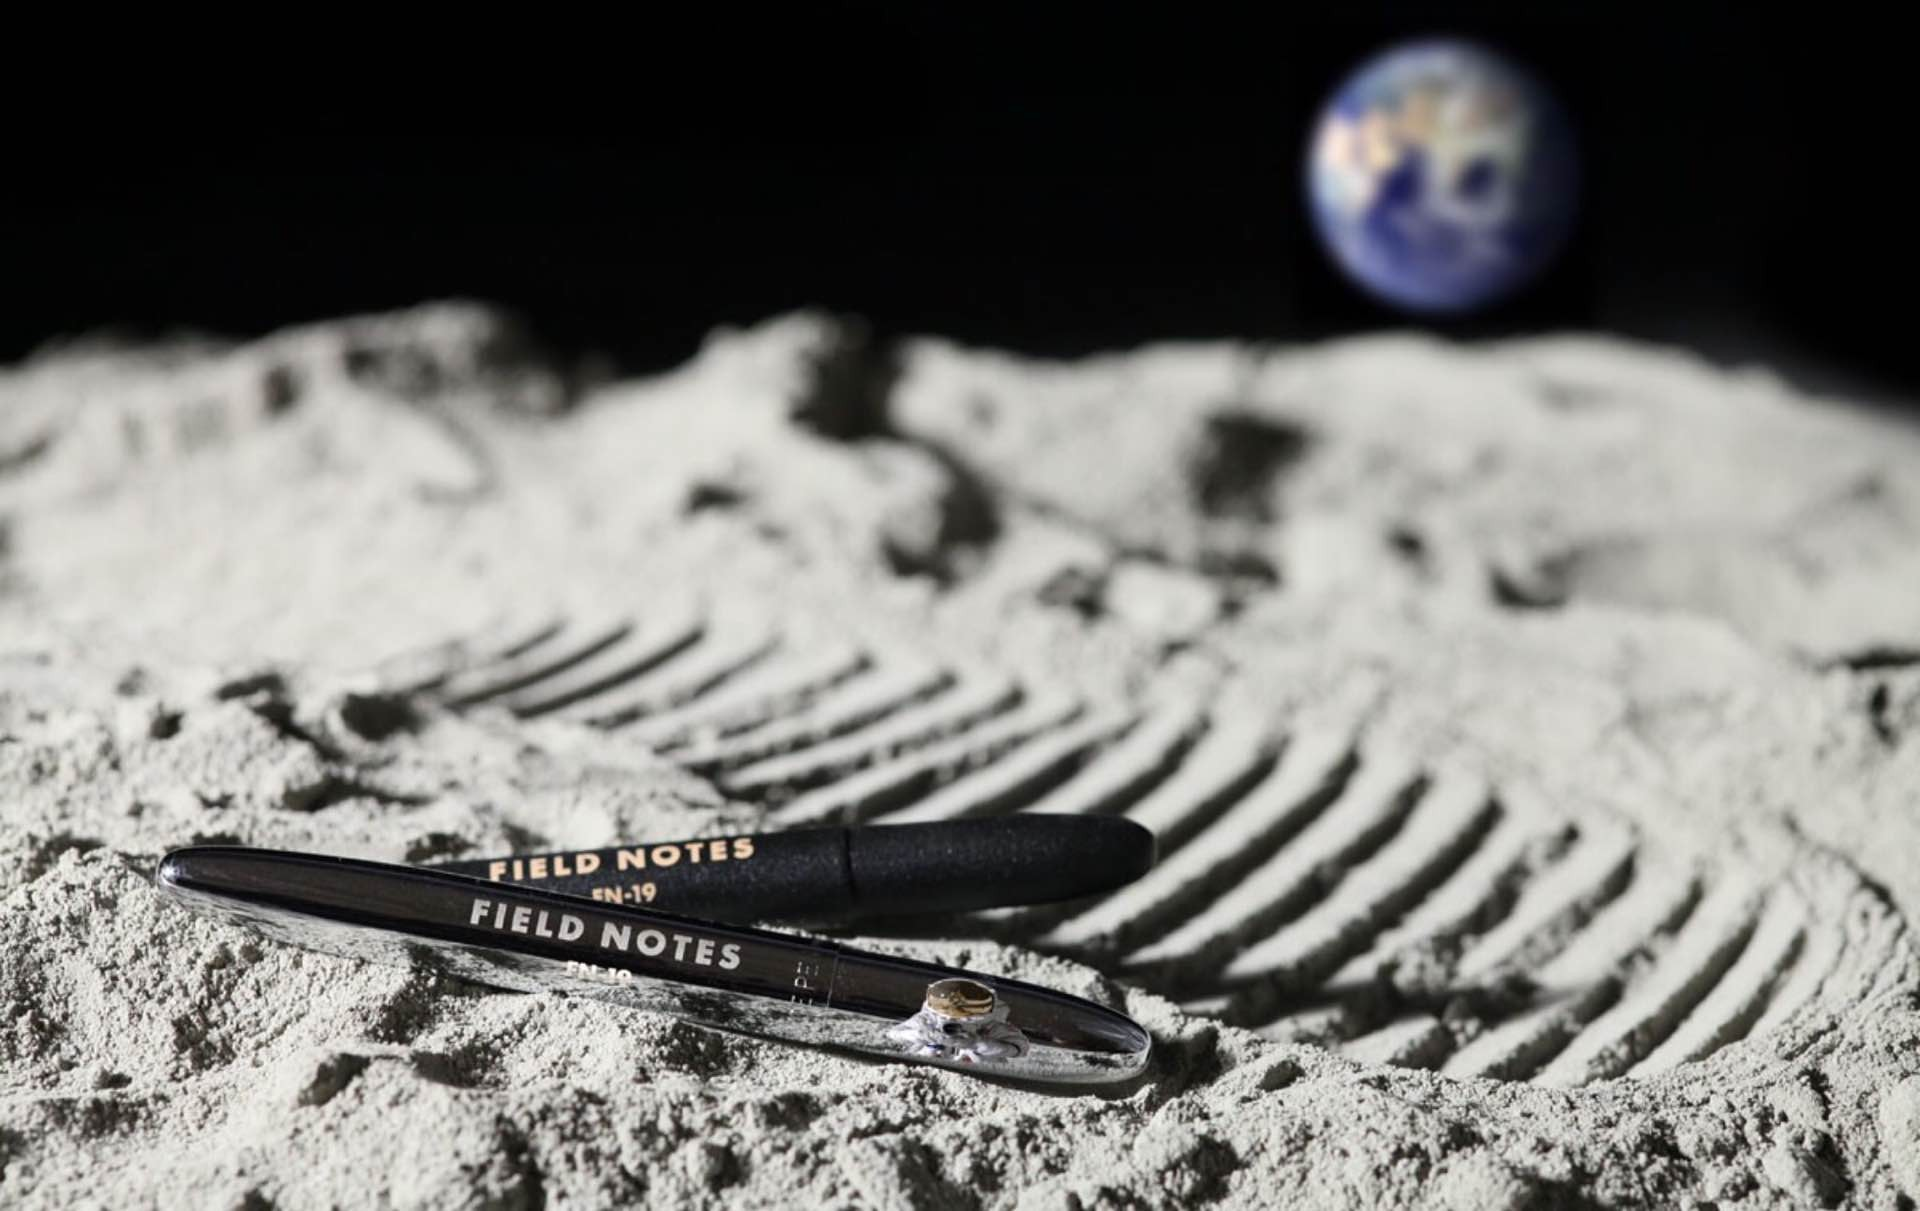 Field Notes' space pen. ($28)